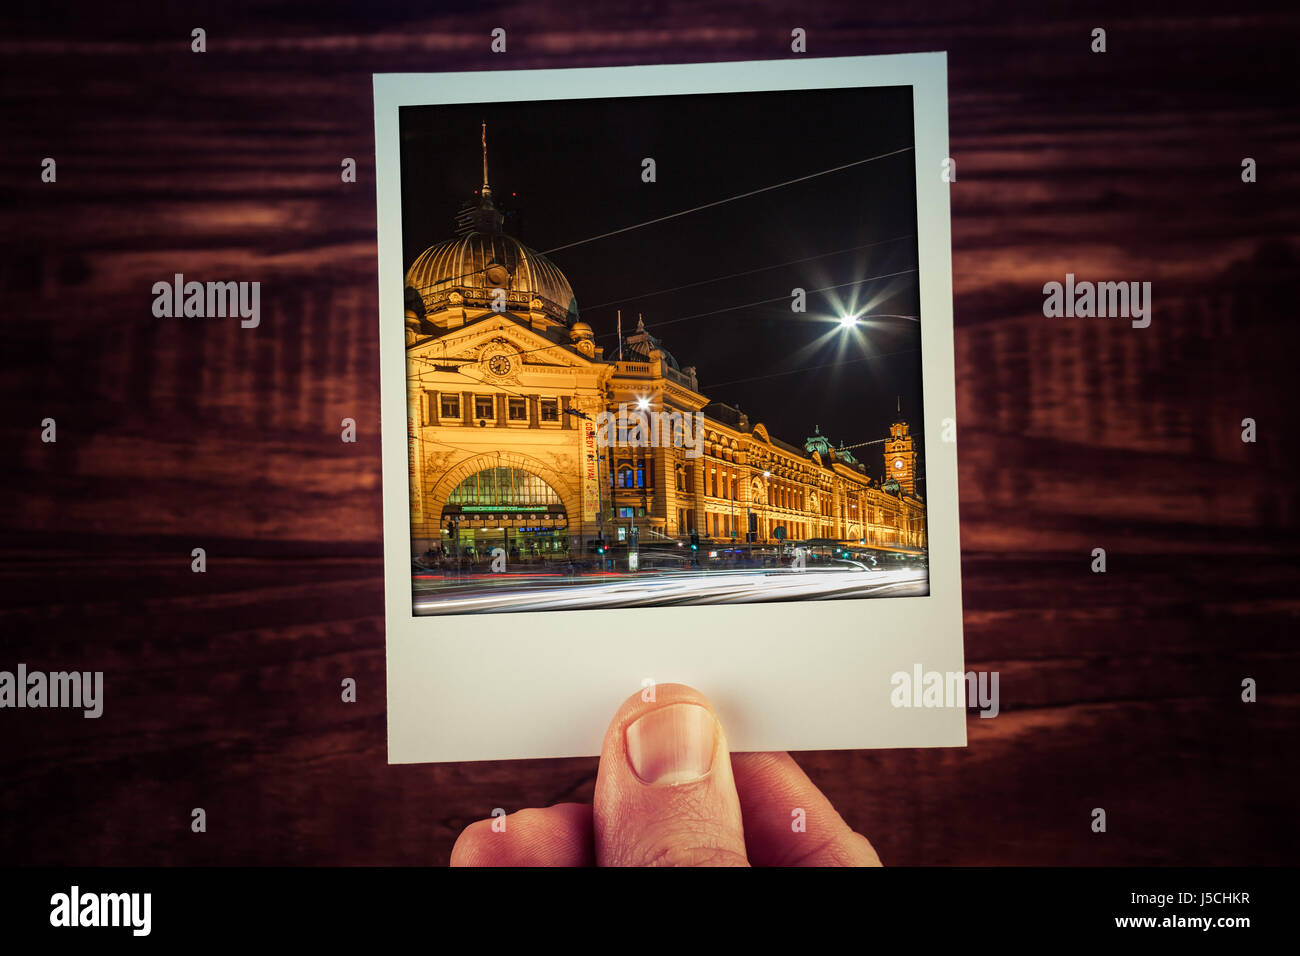 Hand holding polaroid postcard of Flinders Street Station at night. Melbourne, Australia. Travel memories scrapbooking - Stock Image